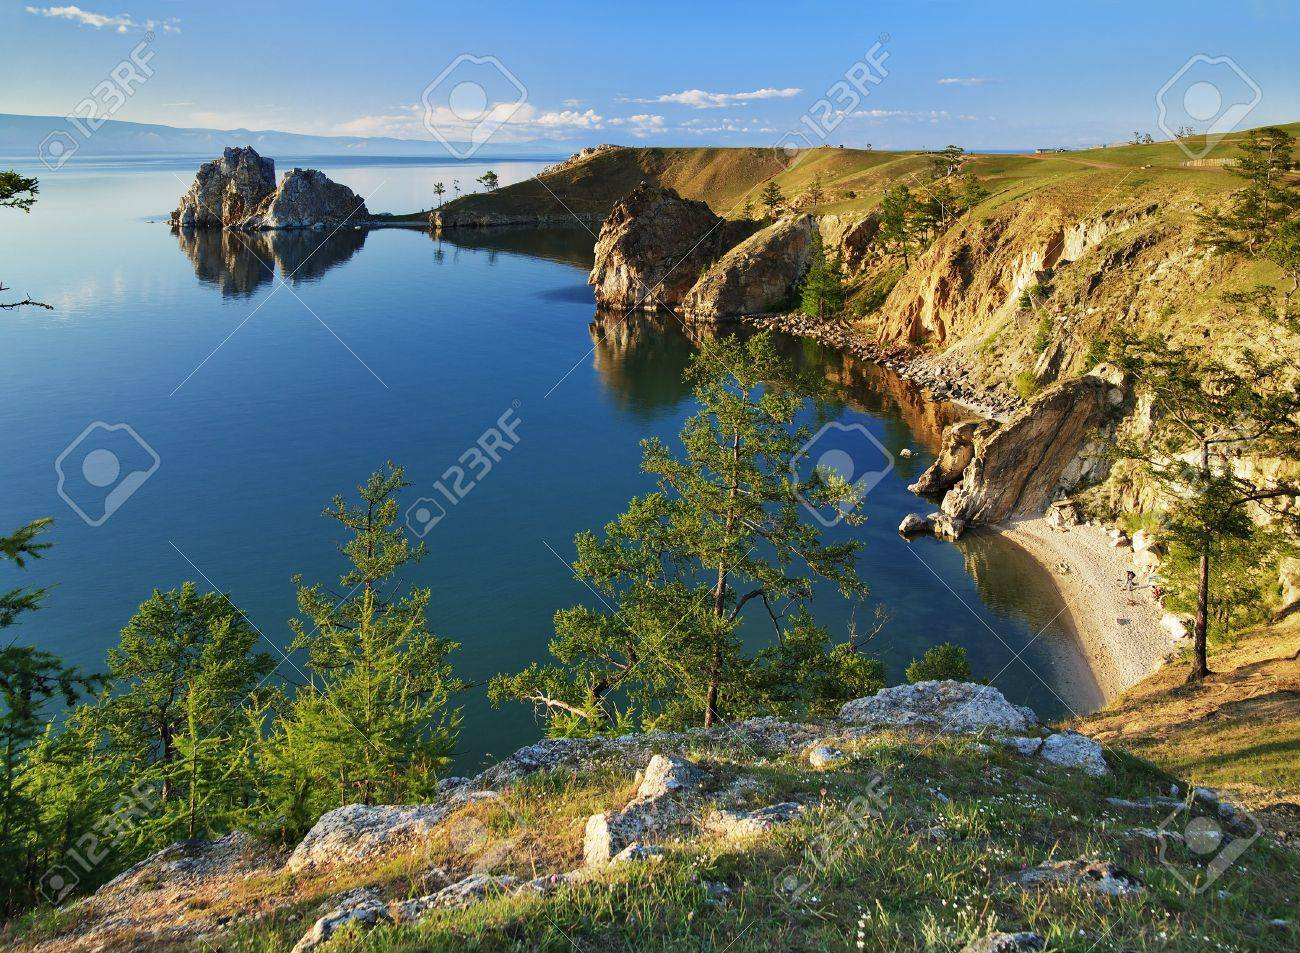 Cape Burhan and Shaman Rock on Olkhon Island at Baikal Lake, Russia Stock Photo - 6899889